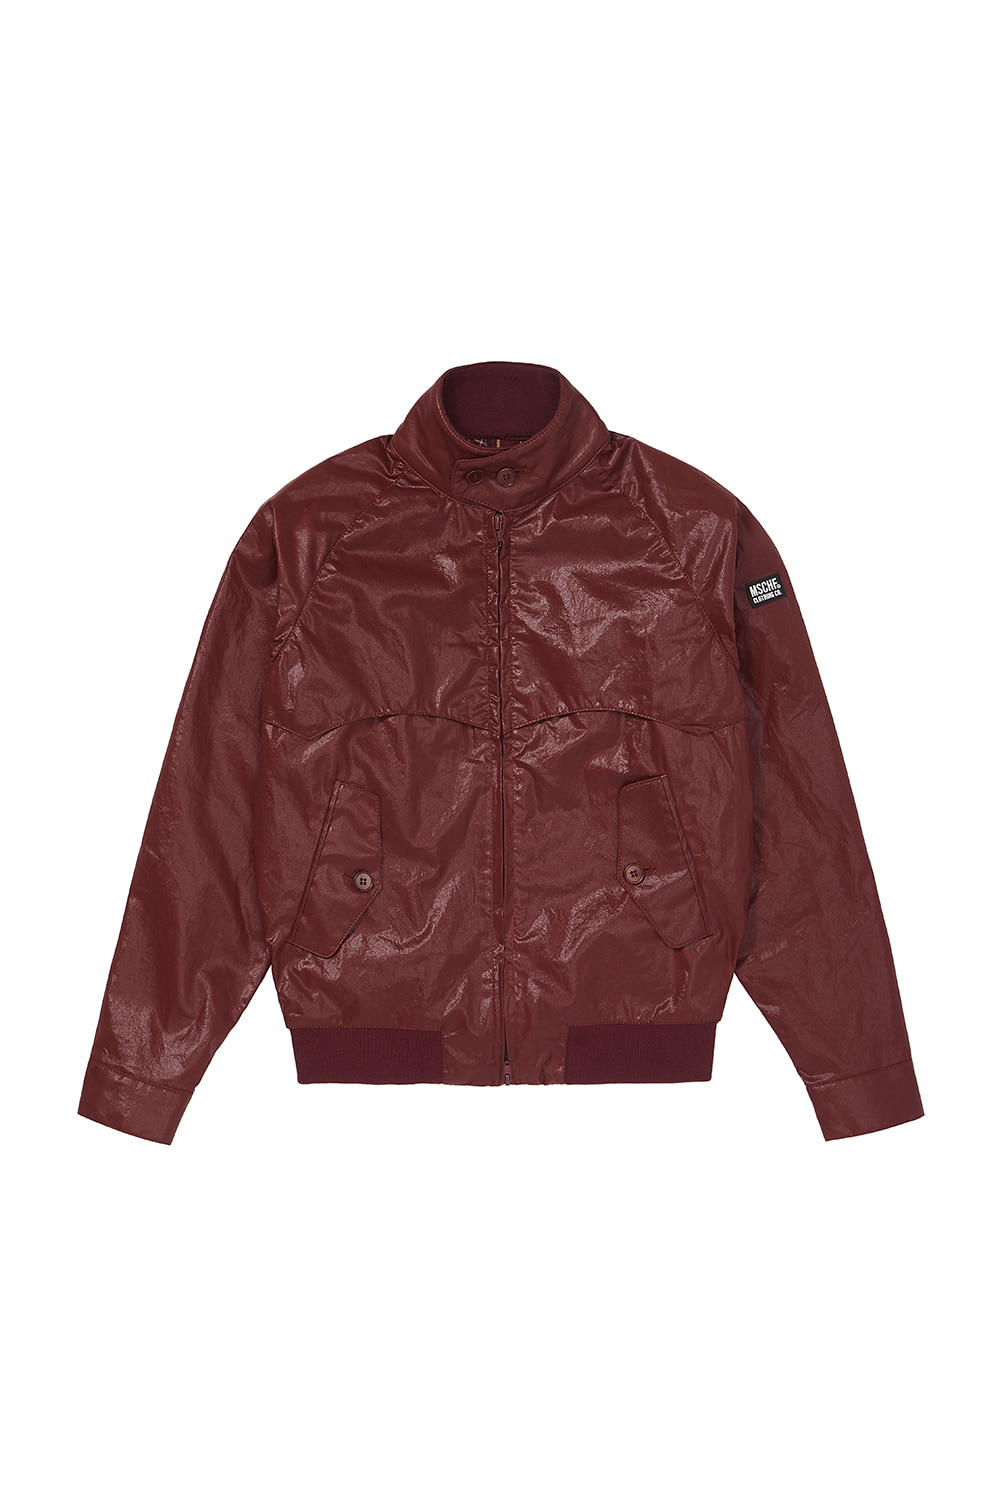 METALLIC COTTON SWING TOP JACKET_brick red